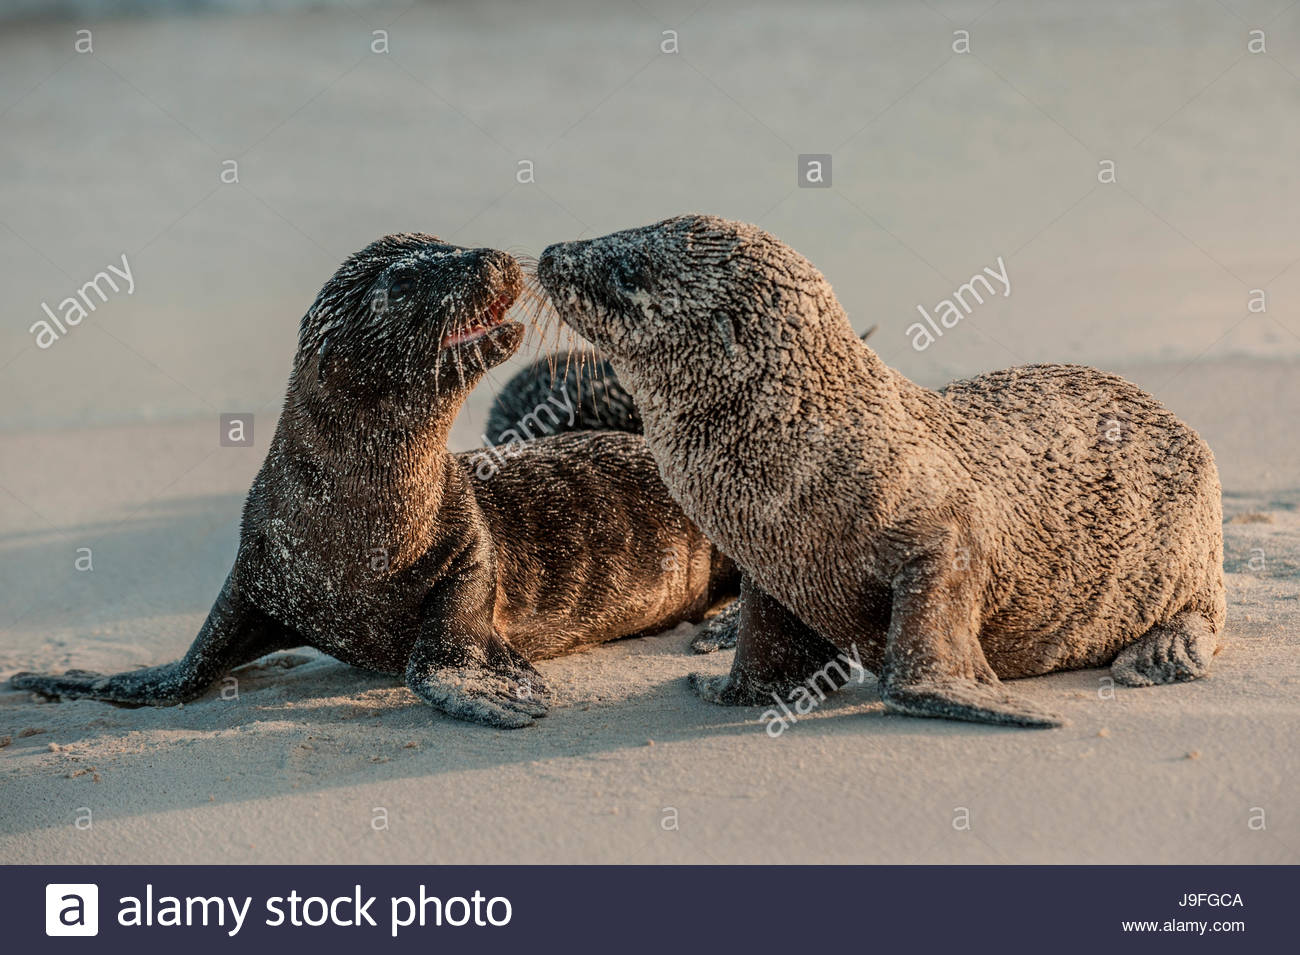 Sea lion pups on Espanola Island in the Galapagos. - Stock Image